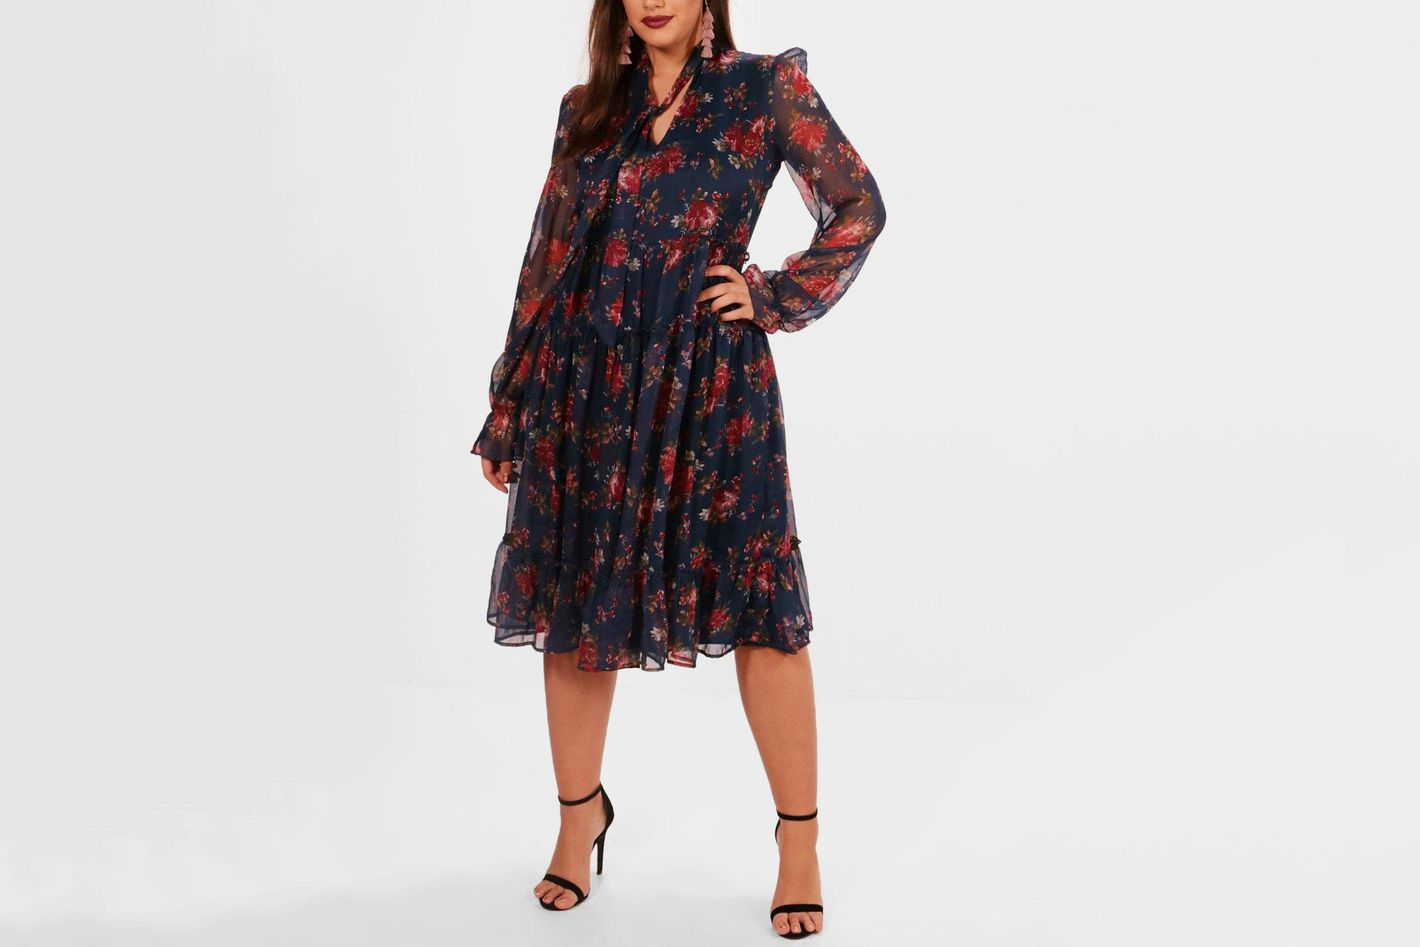 25 Plus-Size Wedding Guest Dresses for 2018